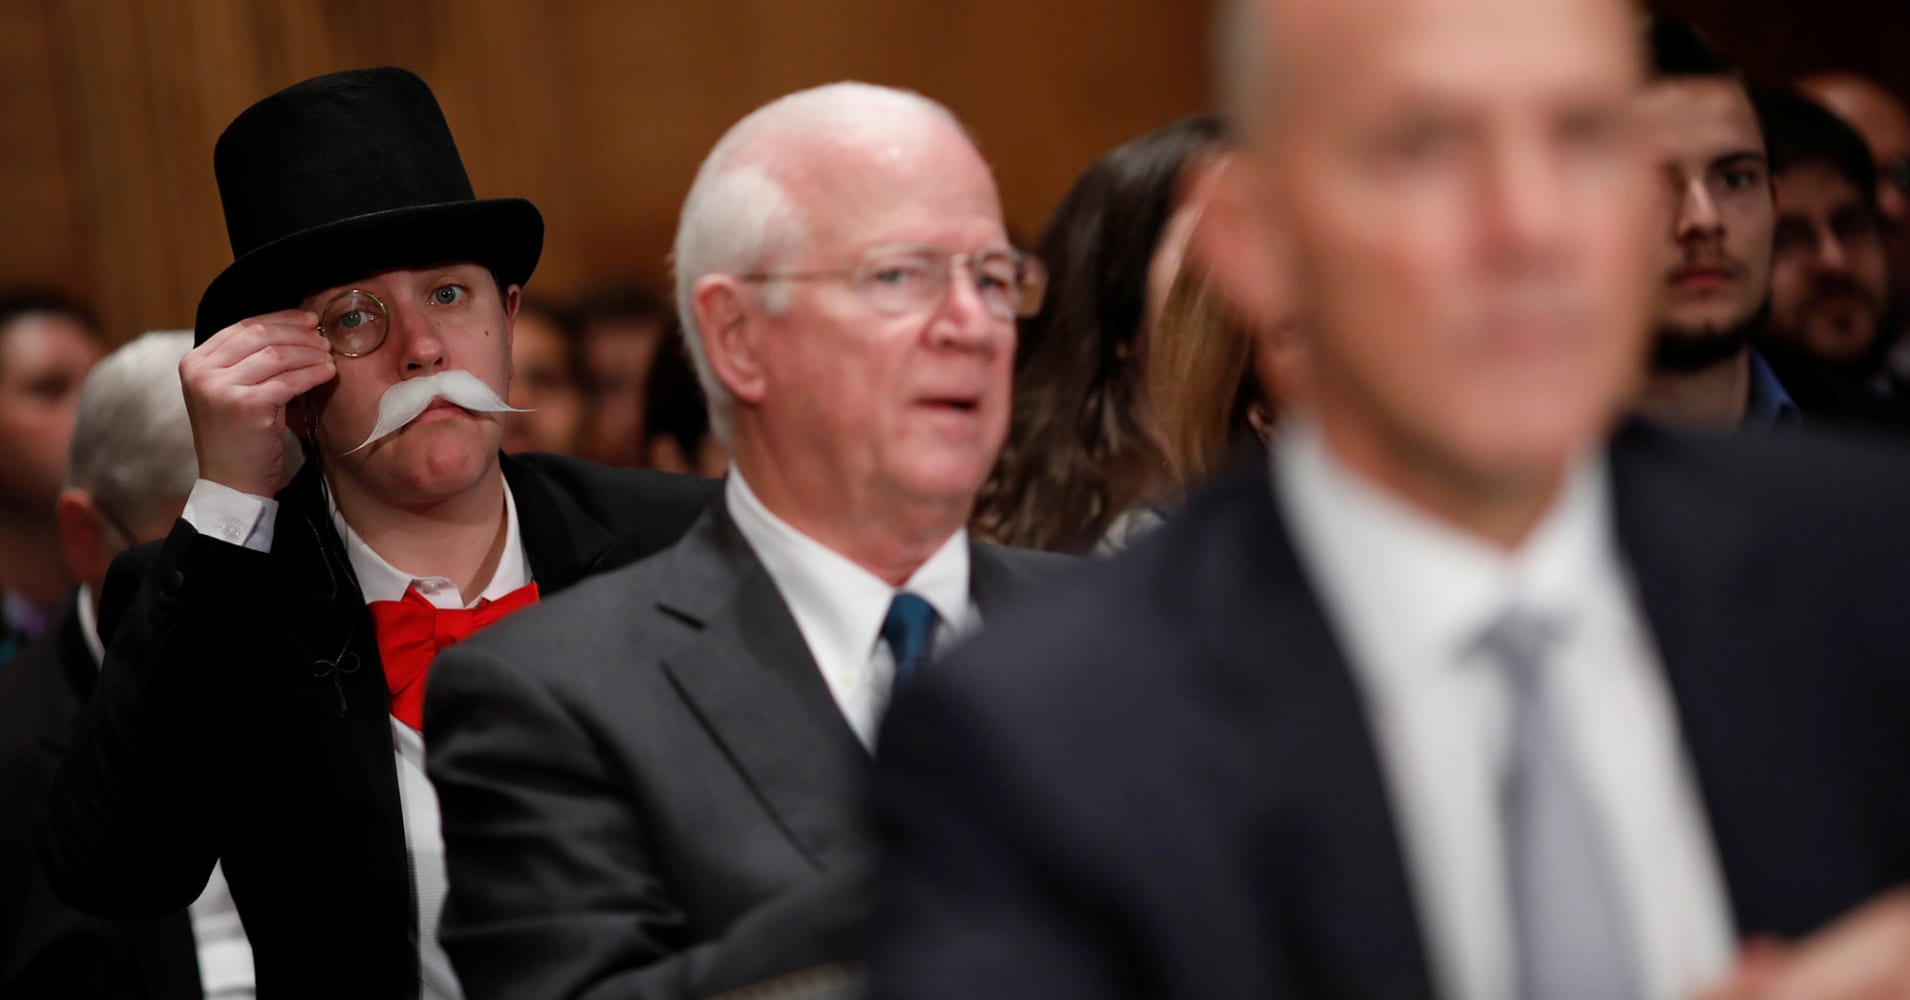 Someone dressed like the Monopoly guy is photobombing the Senate's Equifax hearing